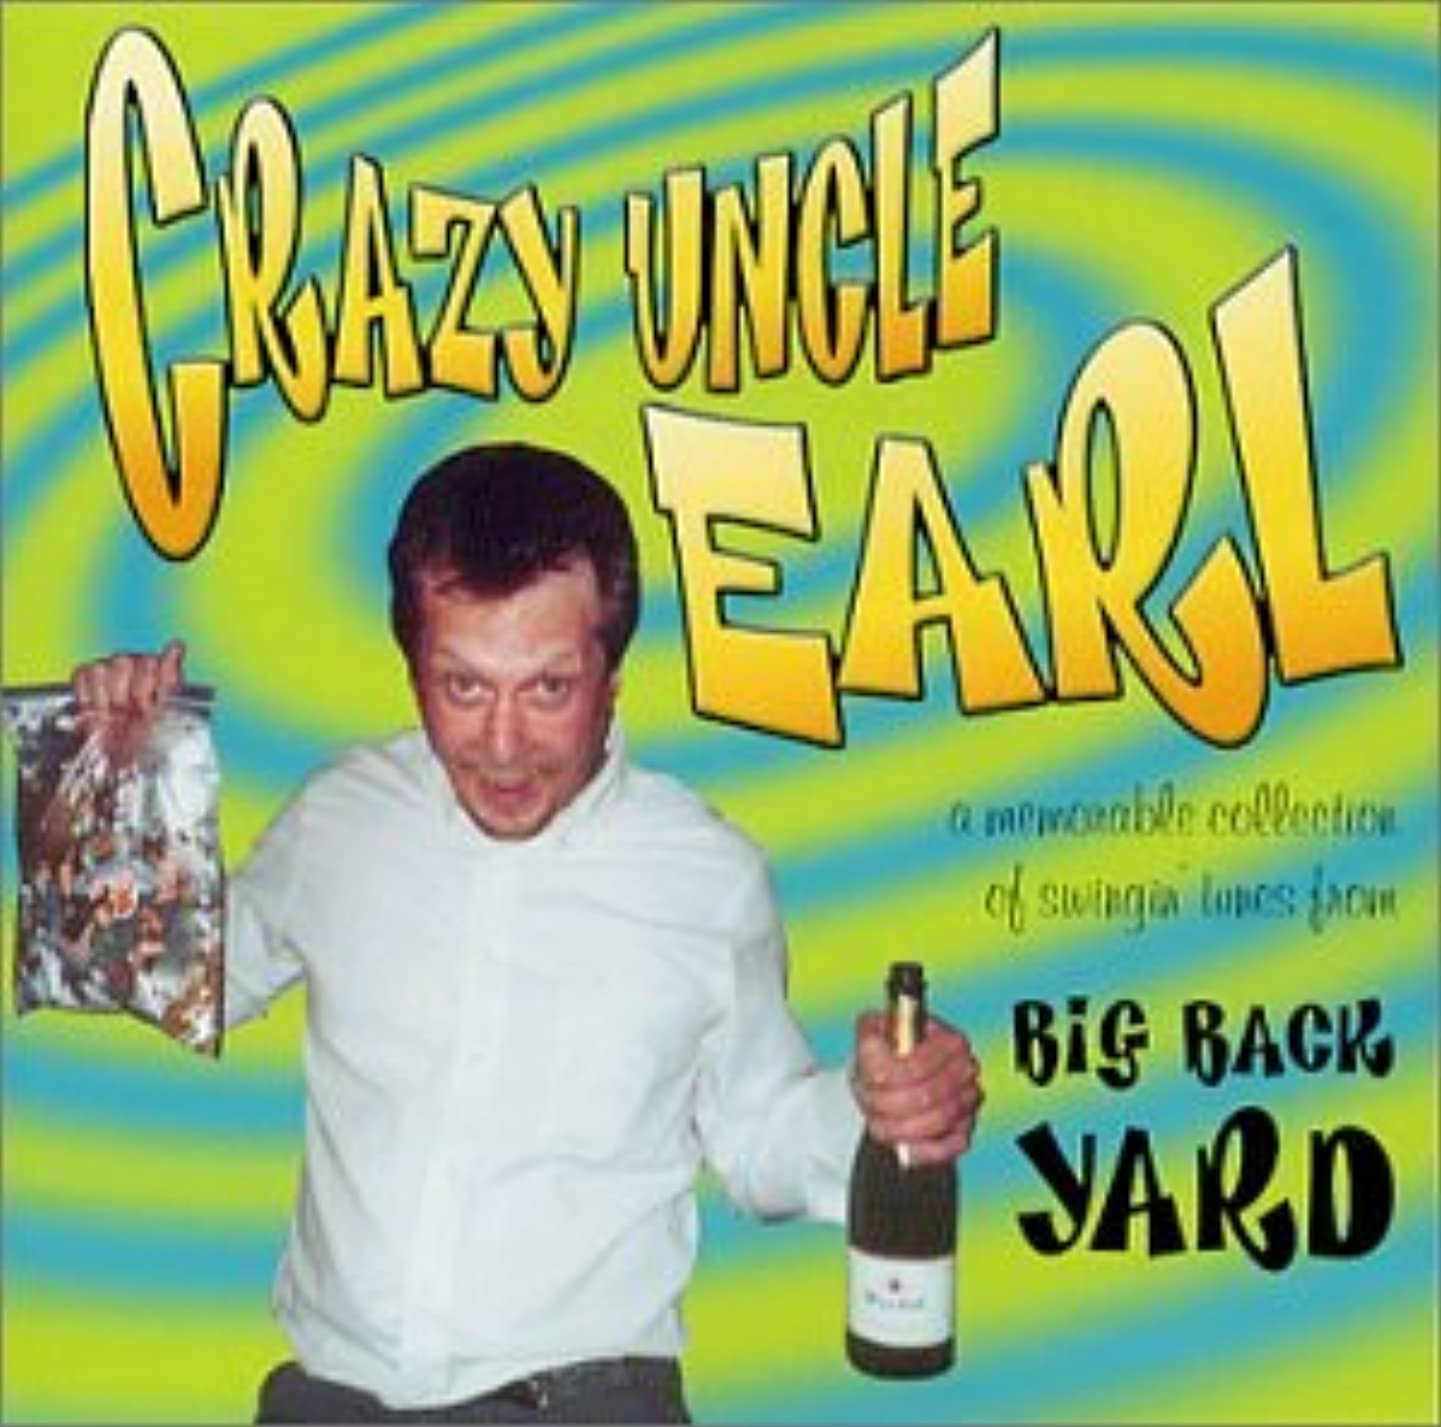 Crazy Uncle Earl